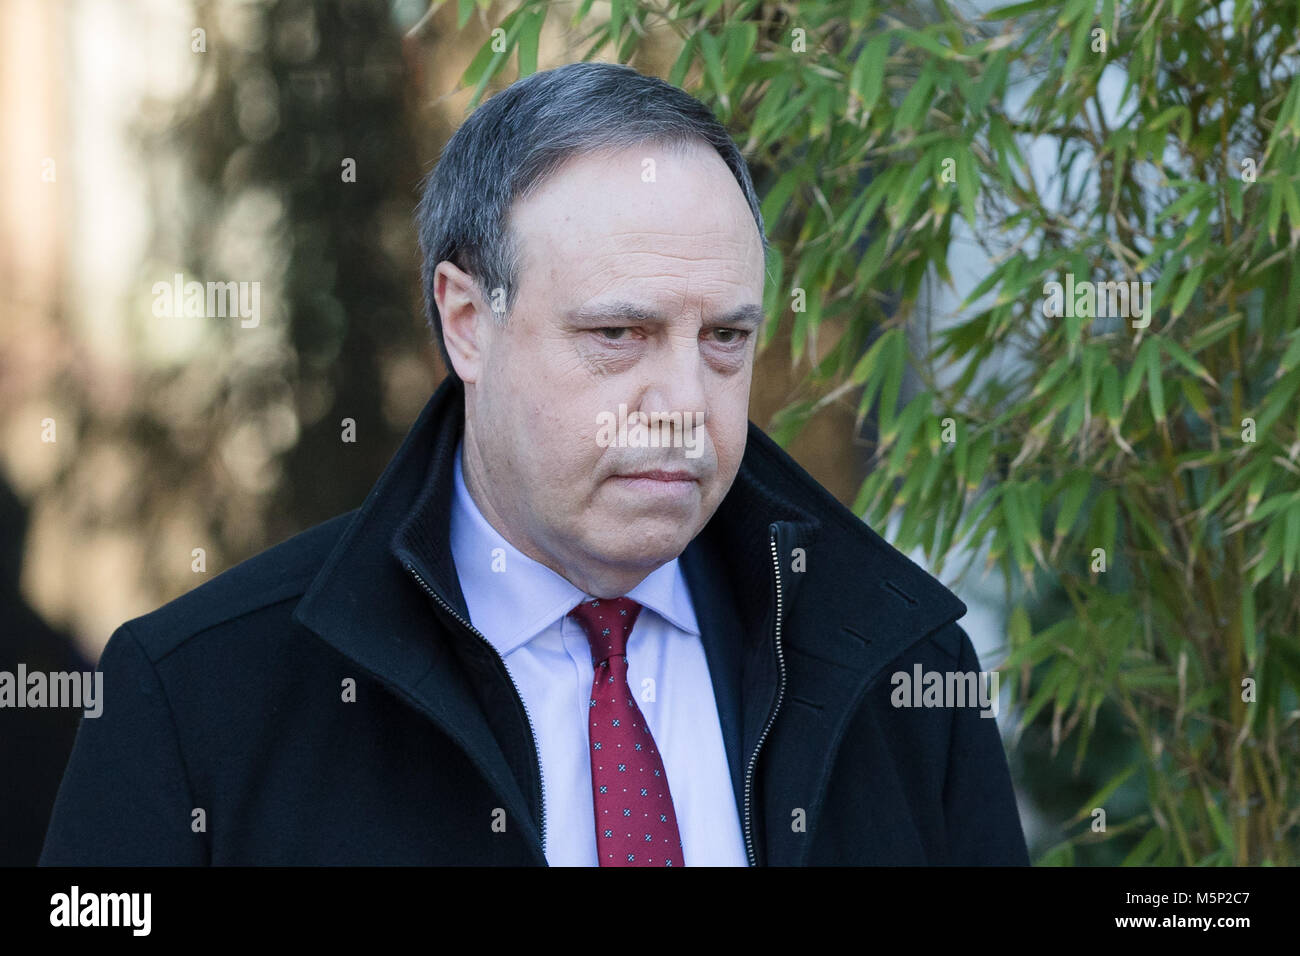 London, UK. 25th February 2018. Nigel Dodds MP, Leader of the DUP at Westminster, leaving ITV Studios in London - Stock Image